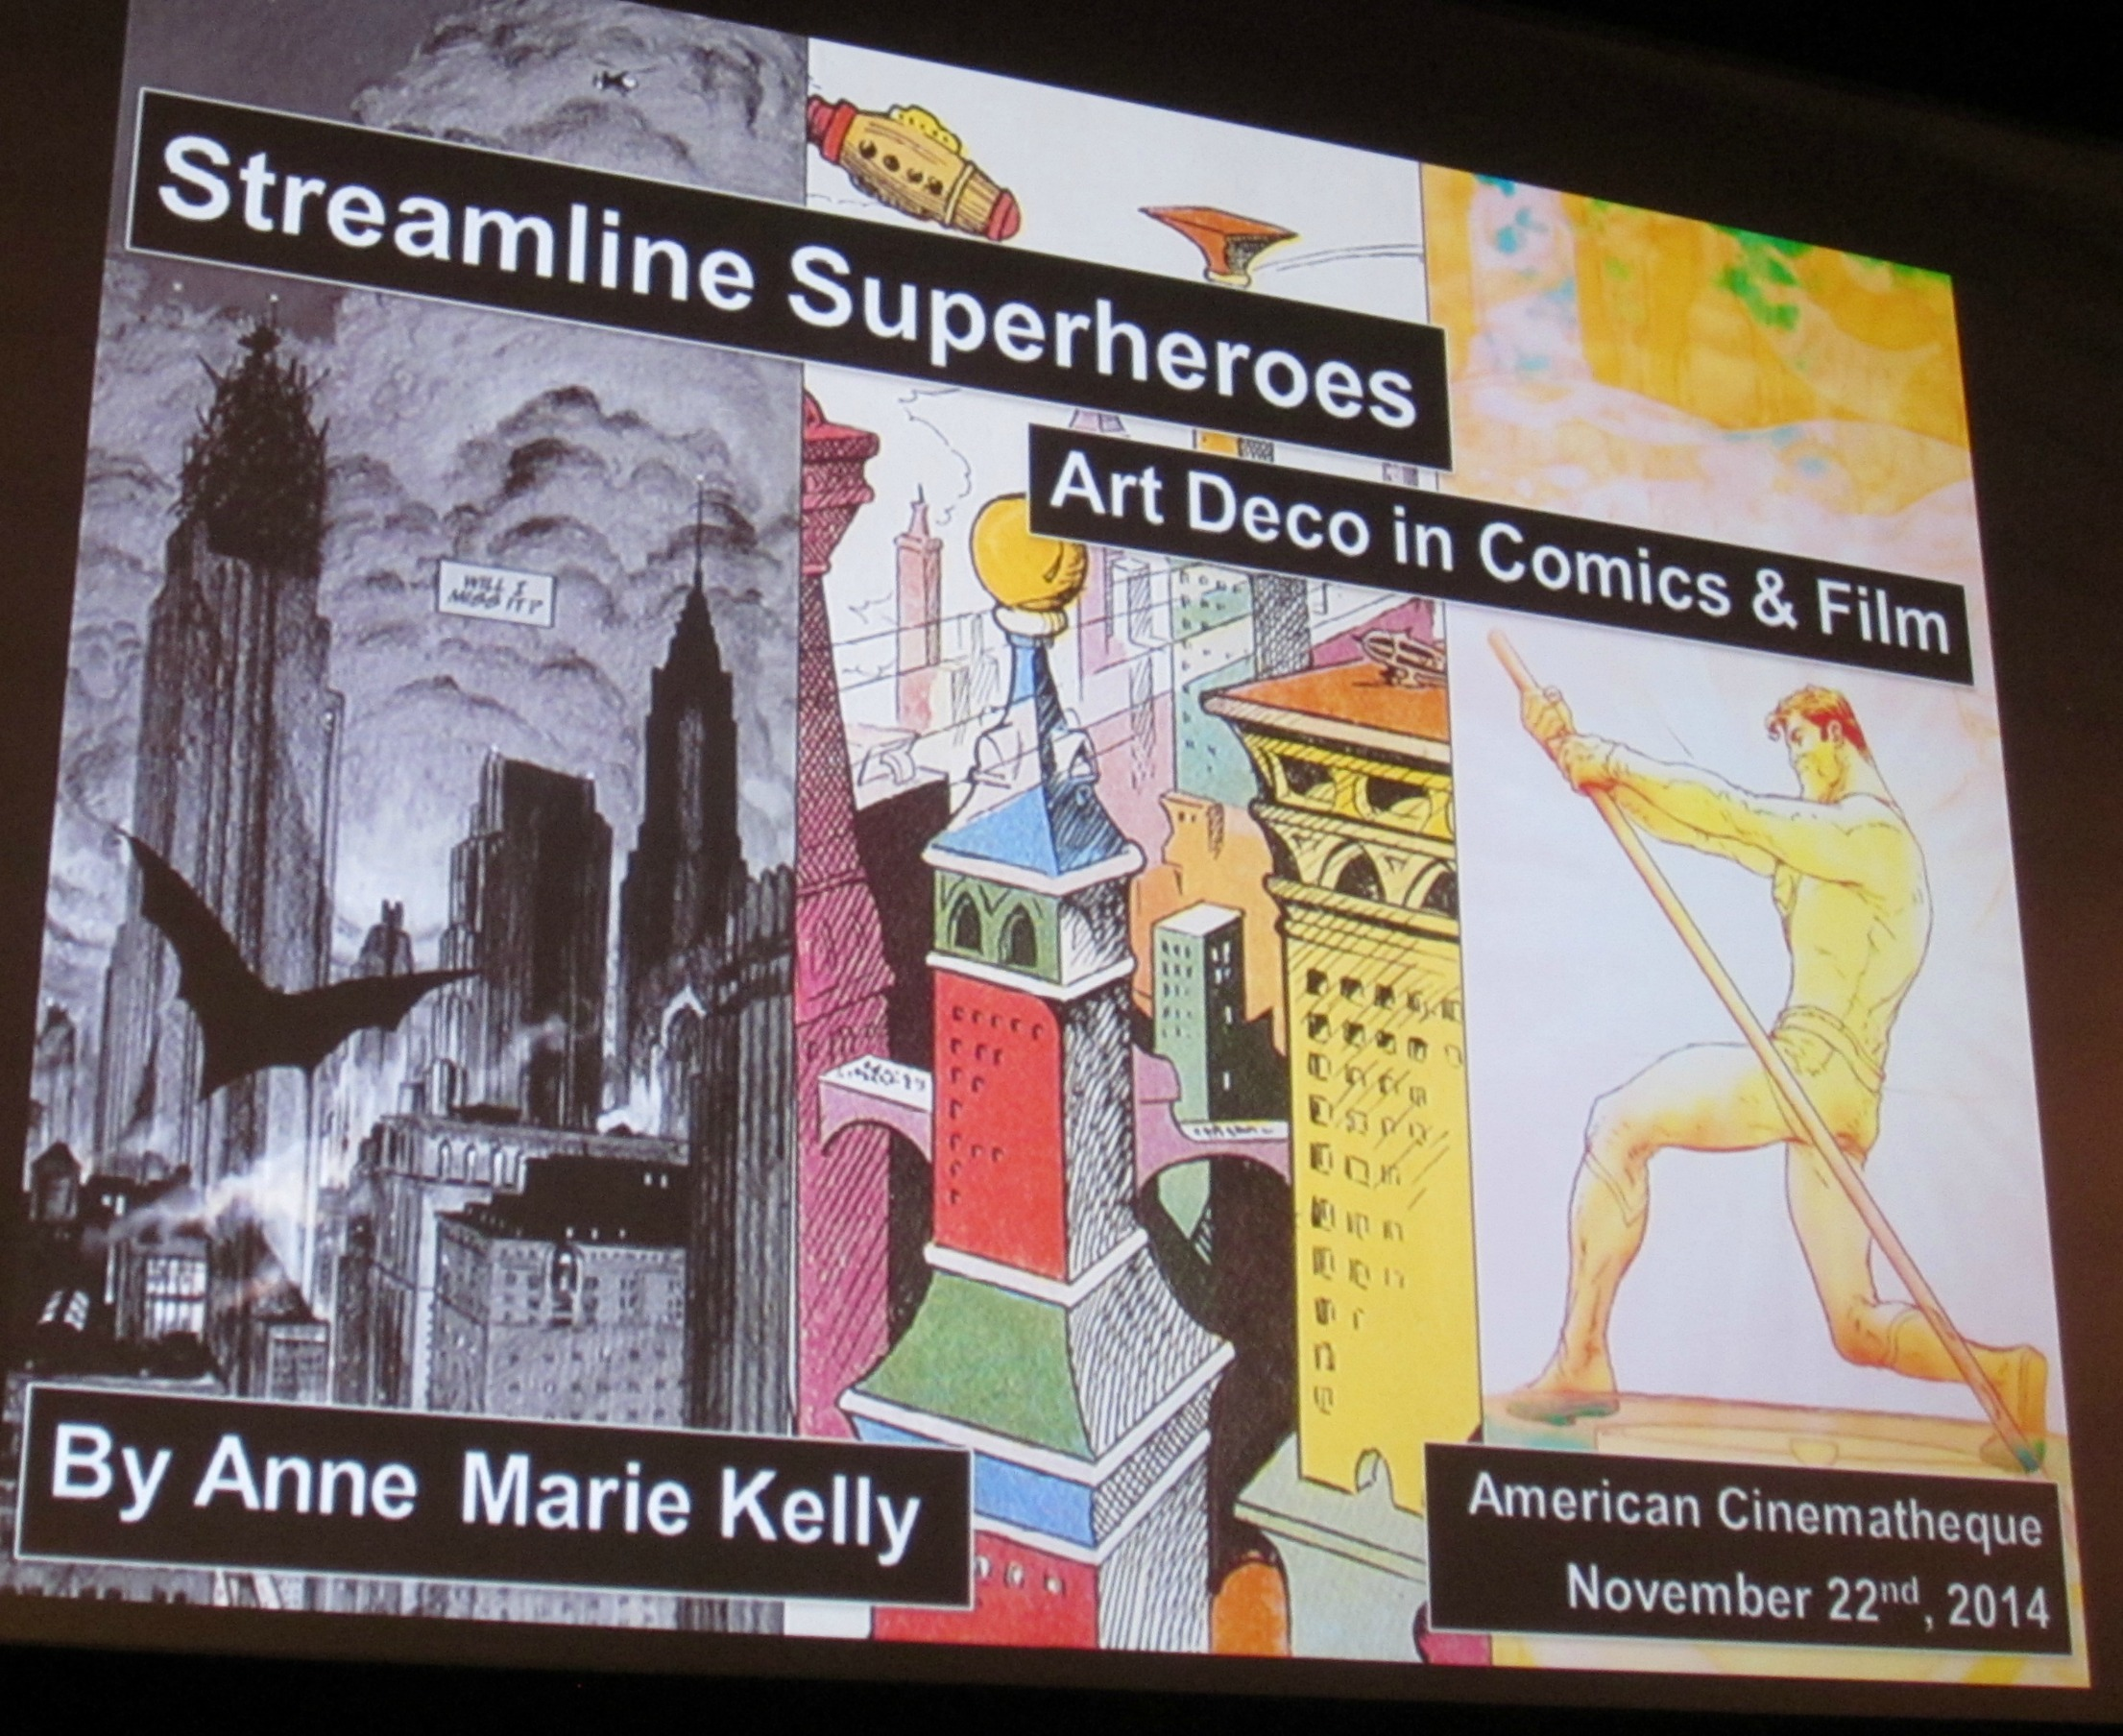 Comic Books and Art Deco Lecture